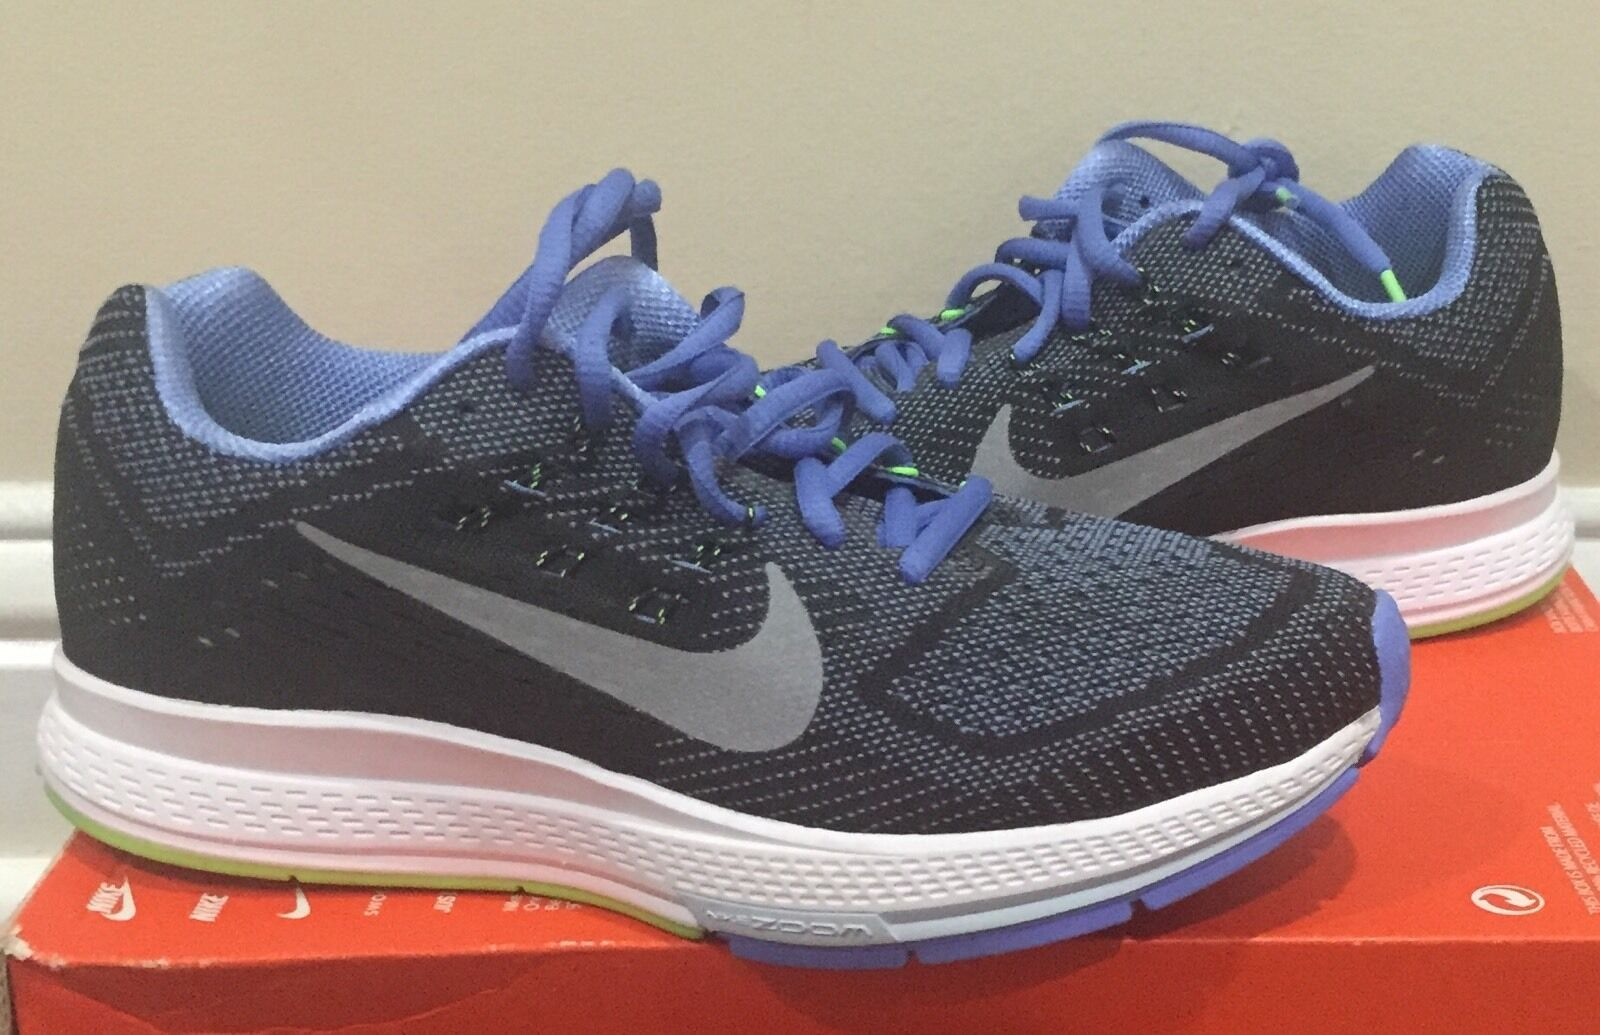 Nike Air Zoom Structure 18 Black/Blue/Green Running Shoes Size 6.5 NIB